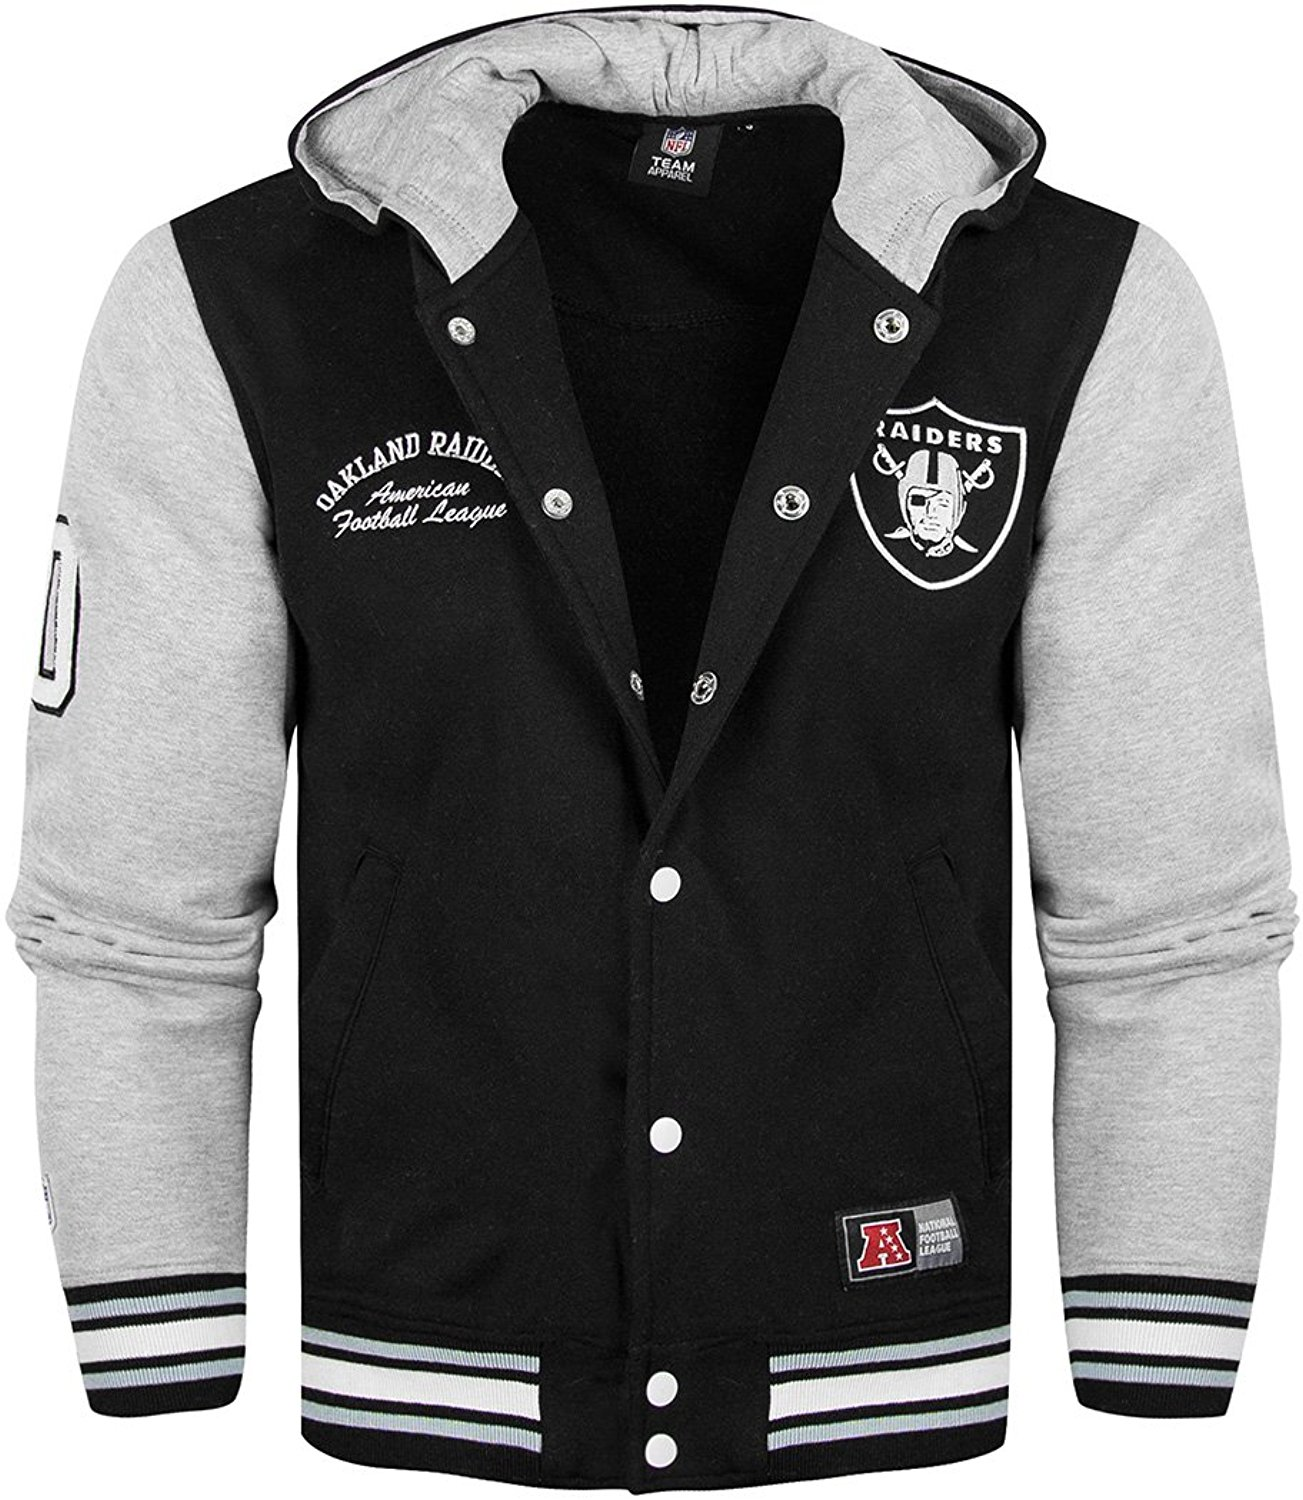 Raiders Letterman Jacket | Mitchell and Ness Varsity Jacket | Vintage Raiders Jacket